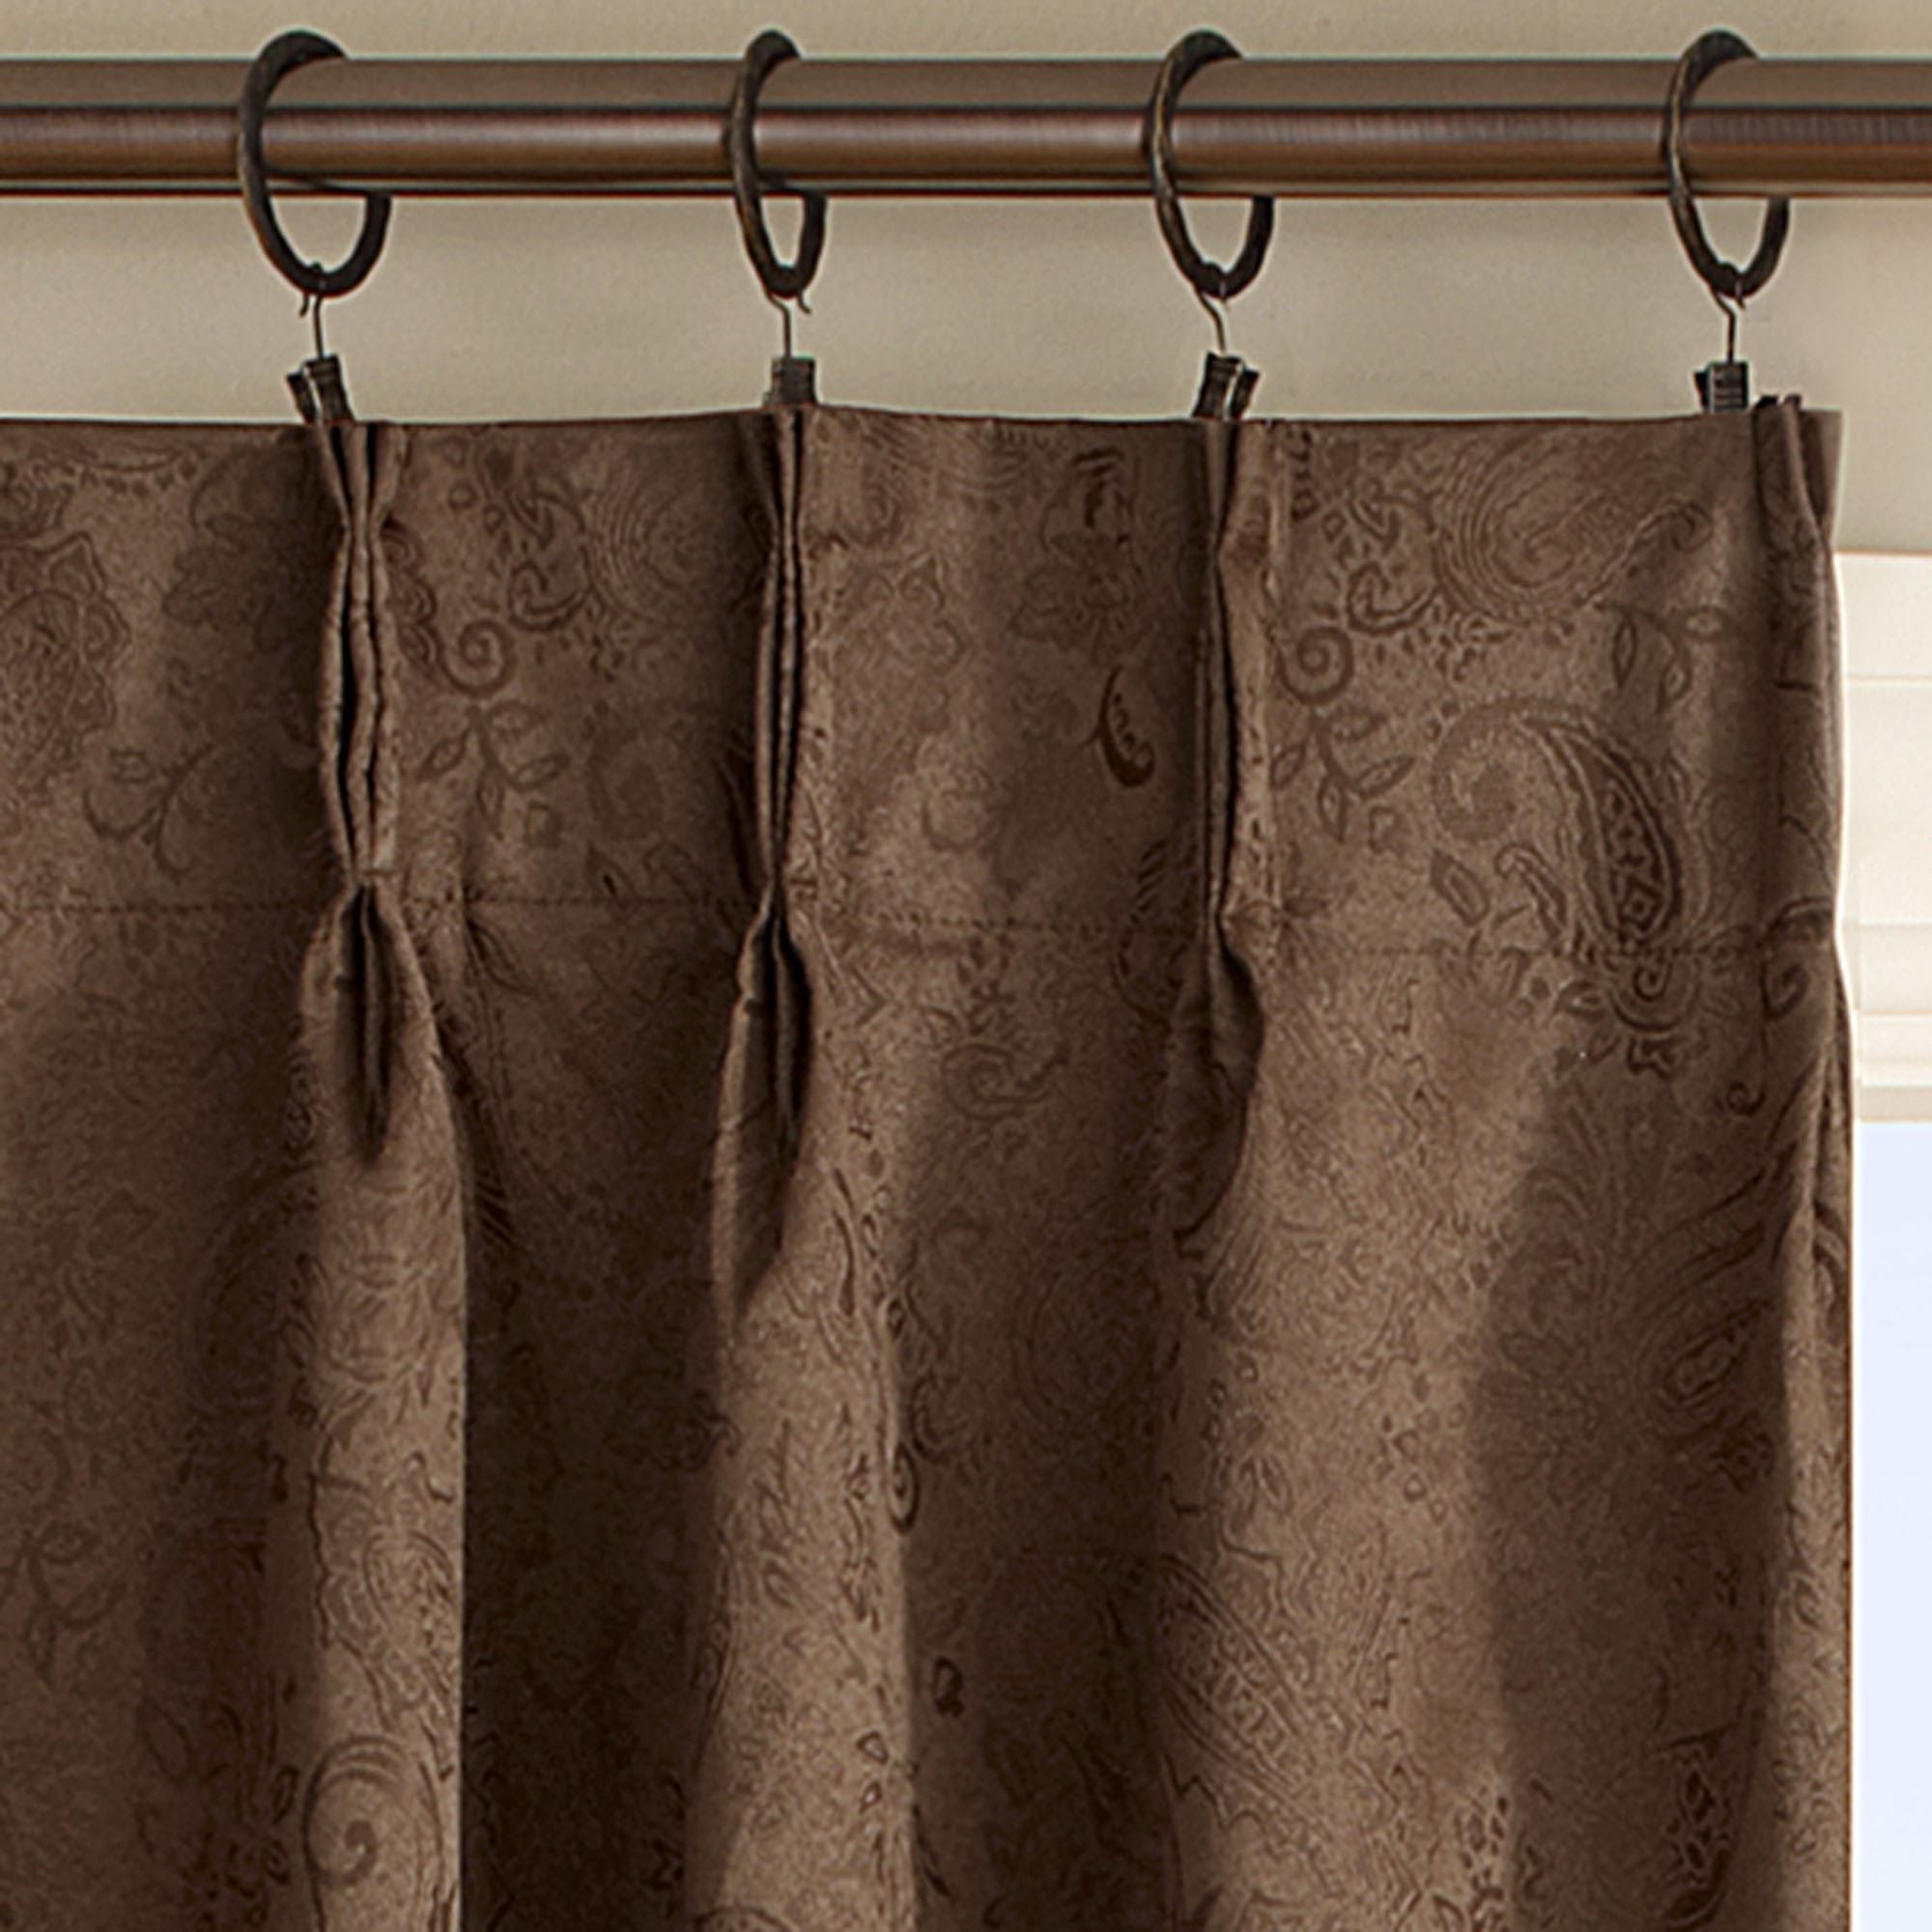 How To Hang Pinch Pleat Curtains With Hooks | www.redglobalmx.org for Pencil Pleat Curtains On Track  53kxo